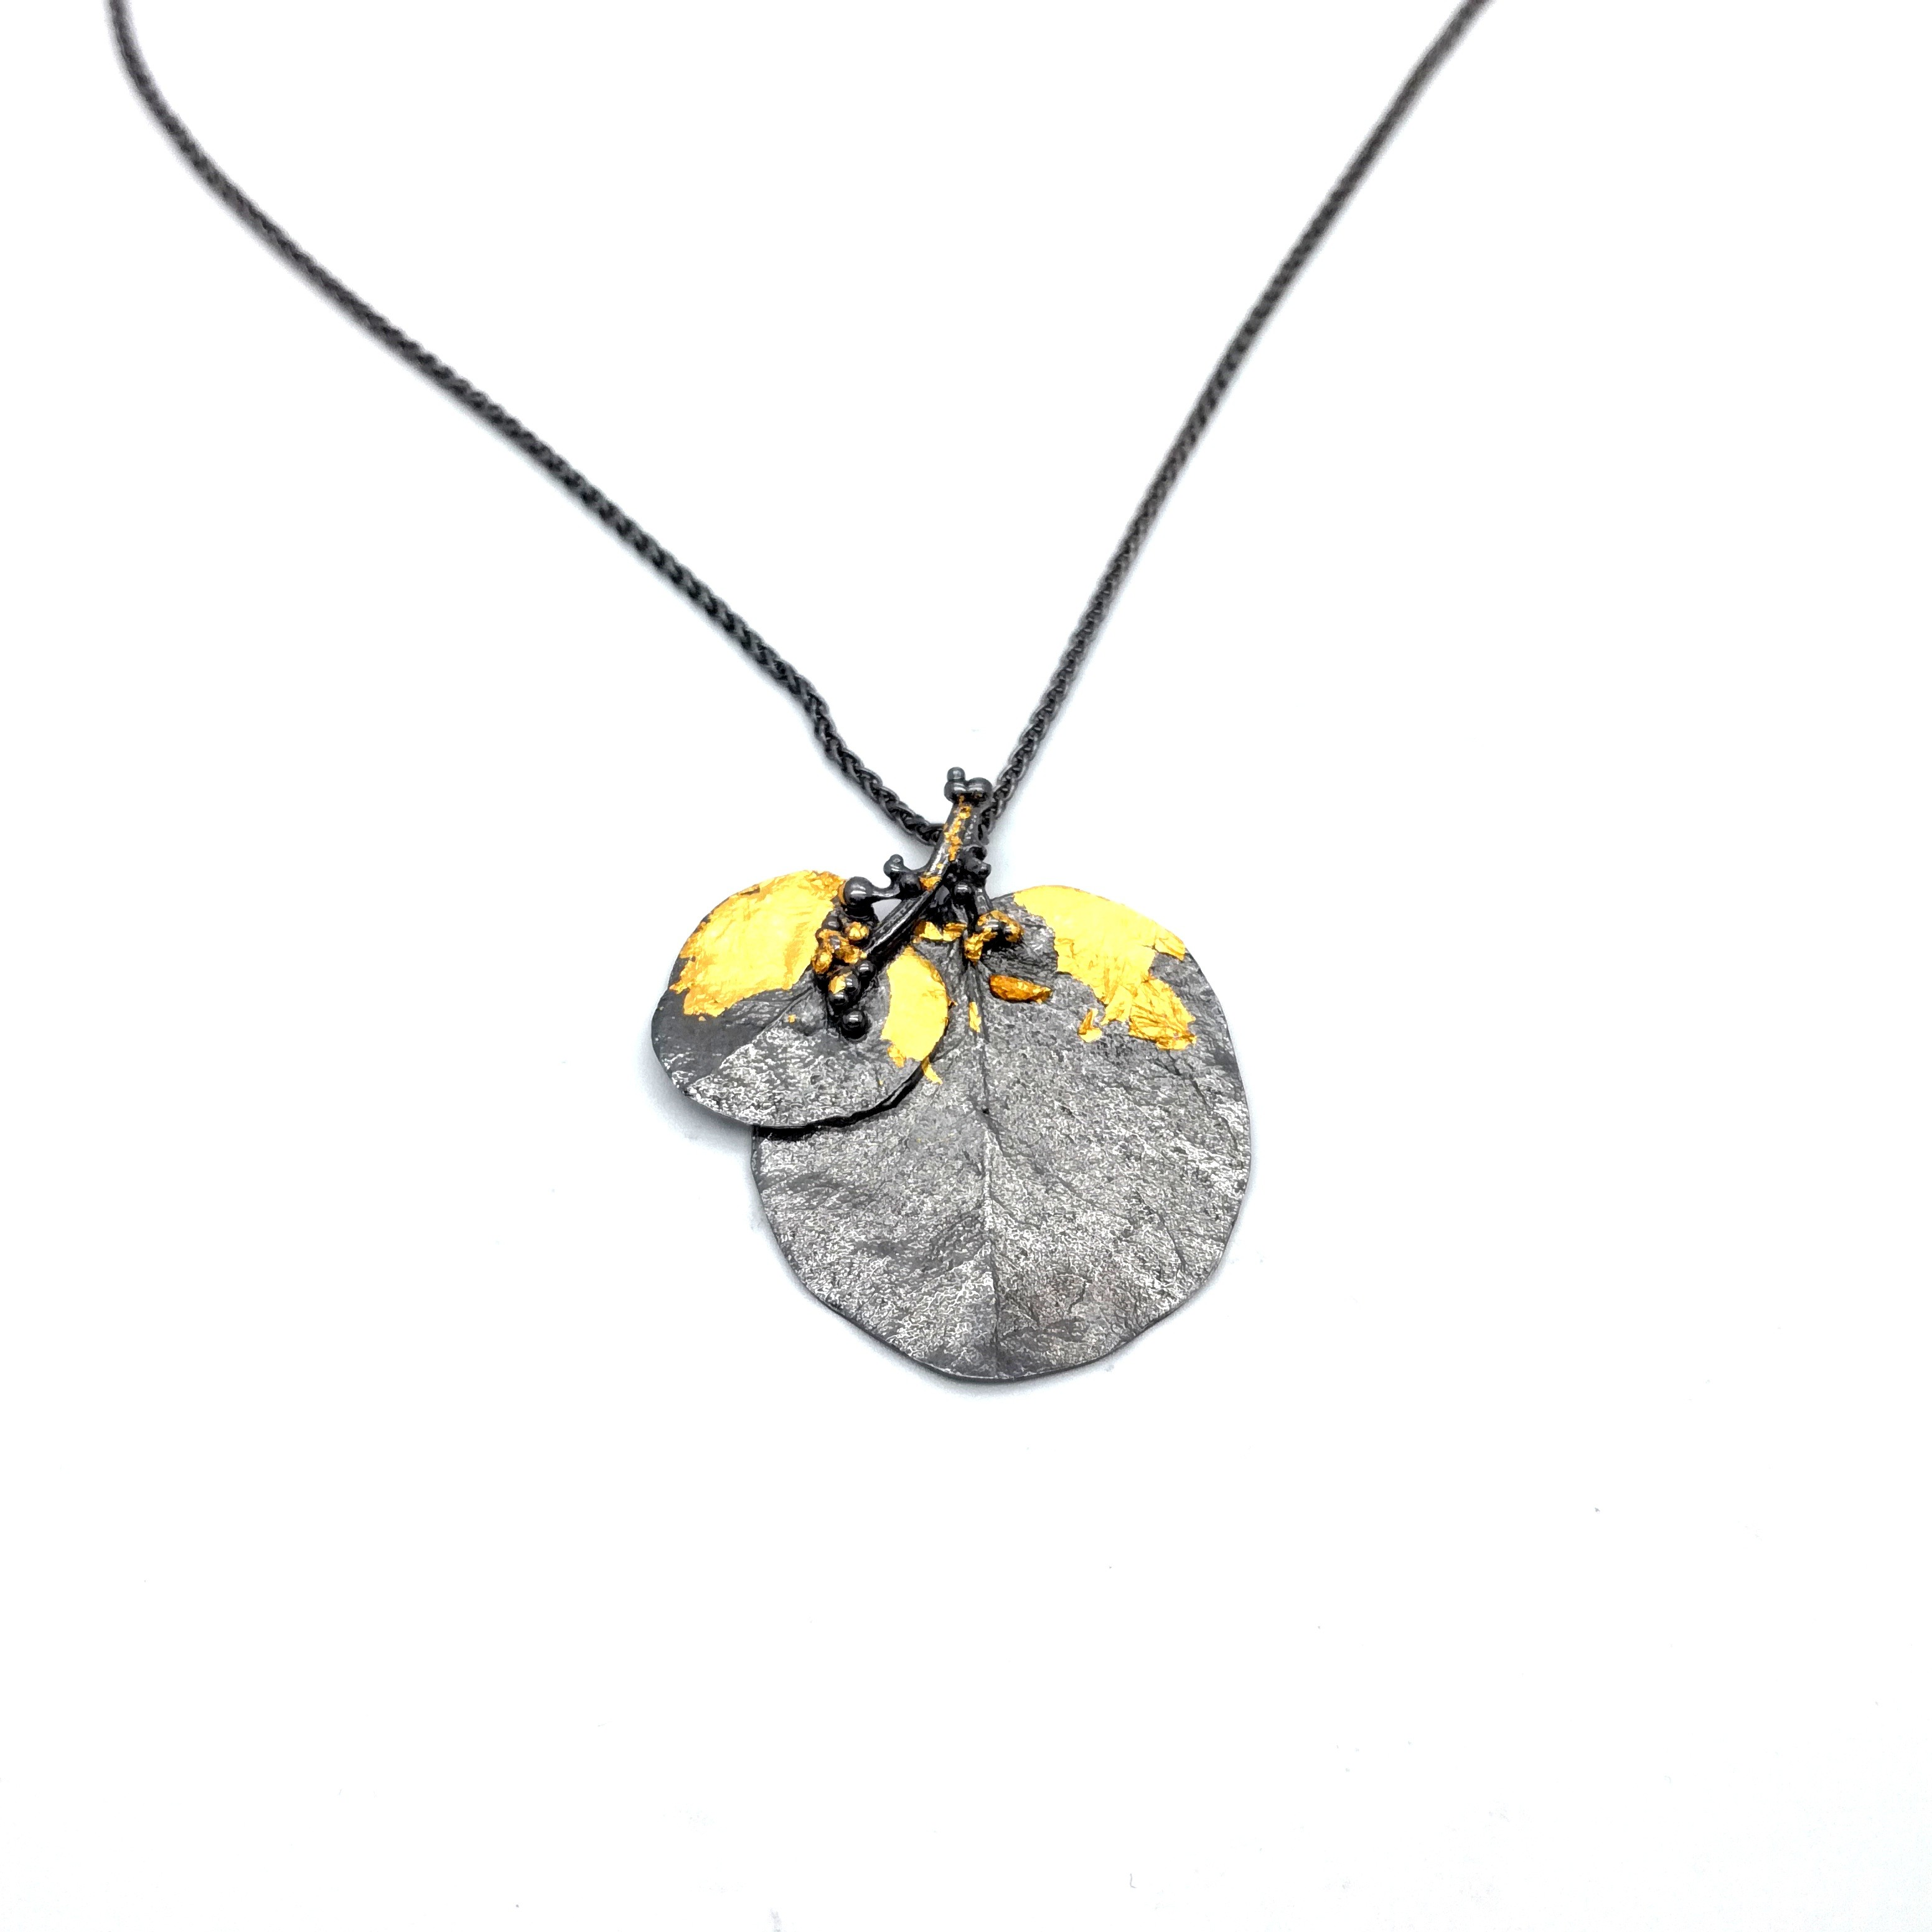 Silver pendant 925 black rhodium plated with gold leaf 22K